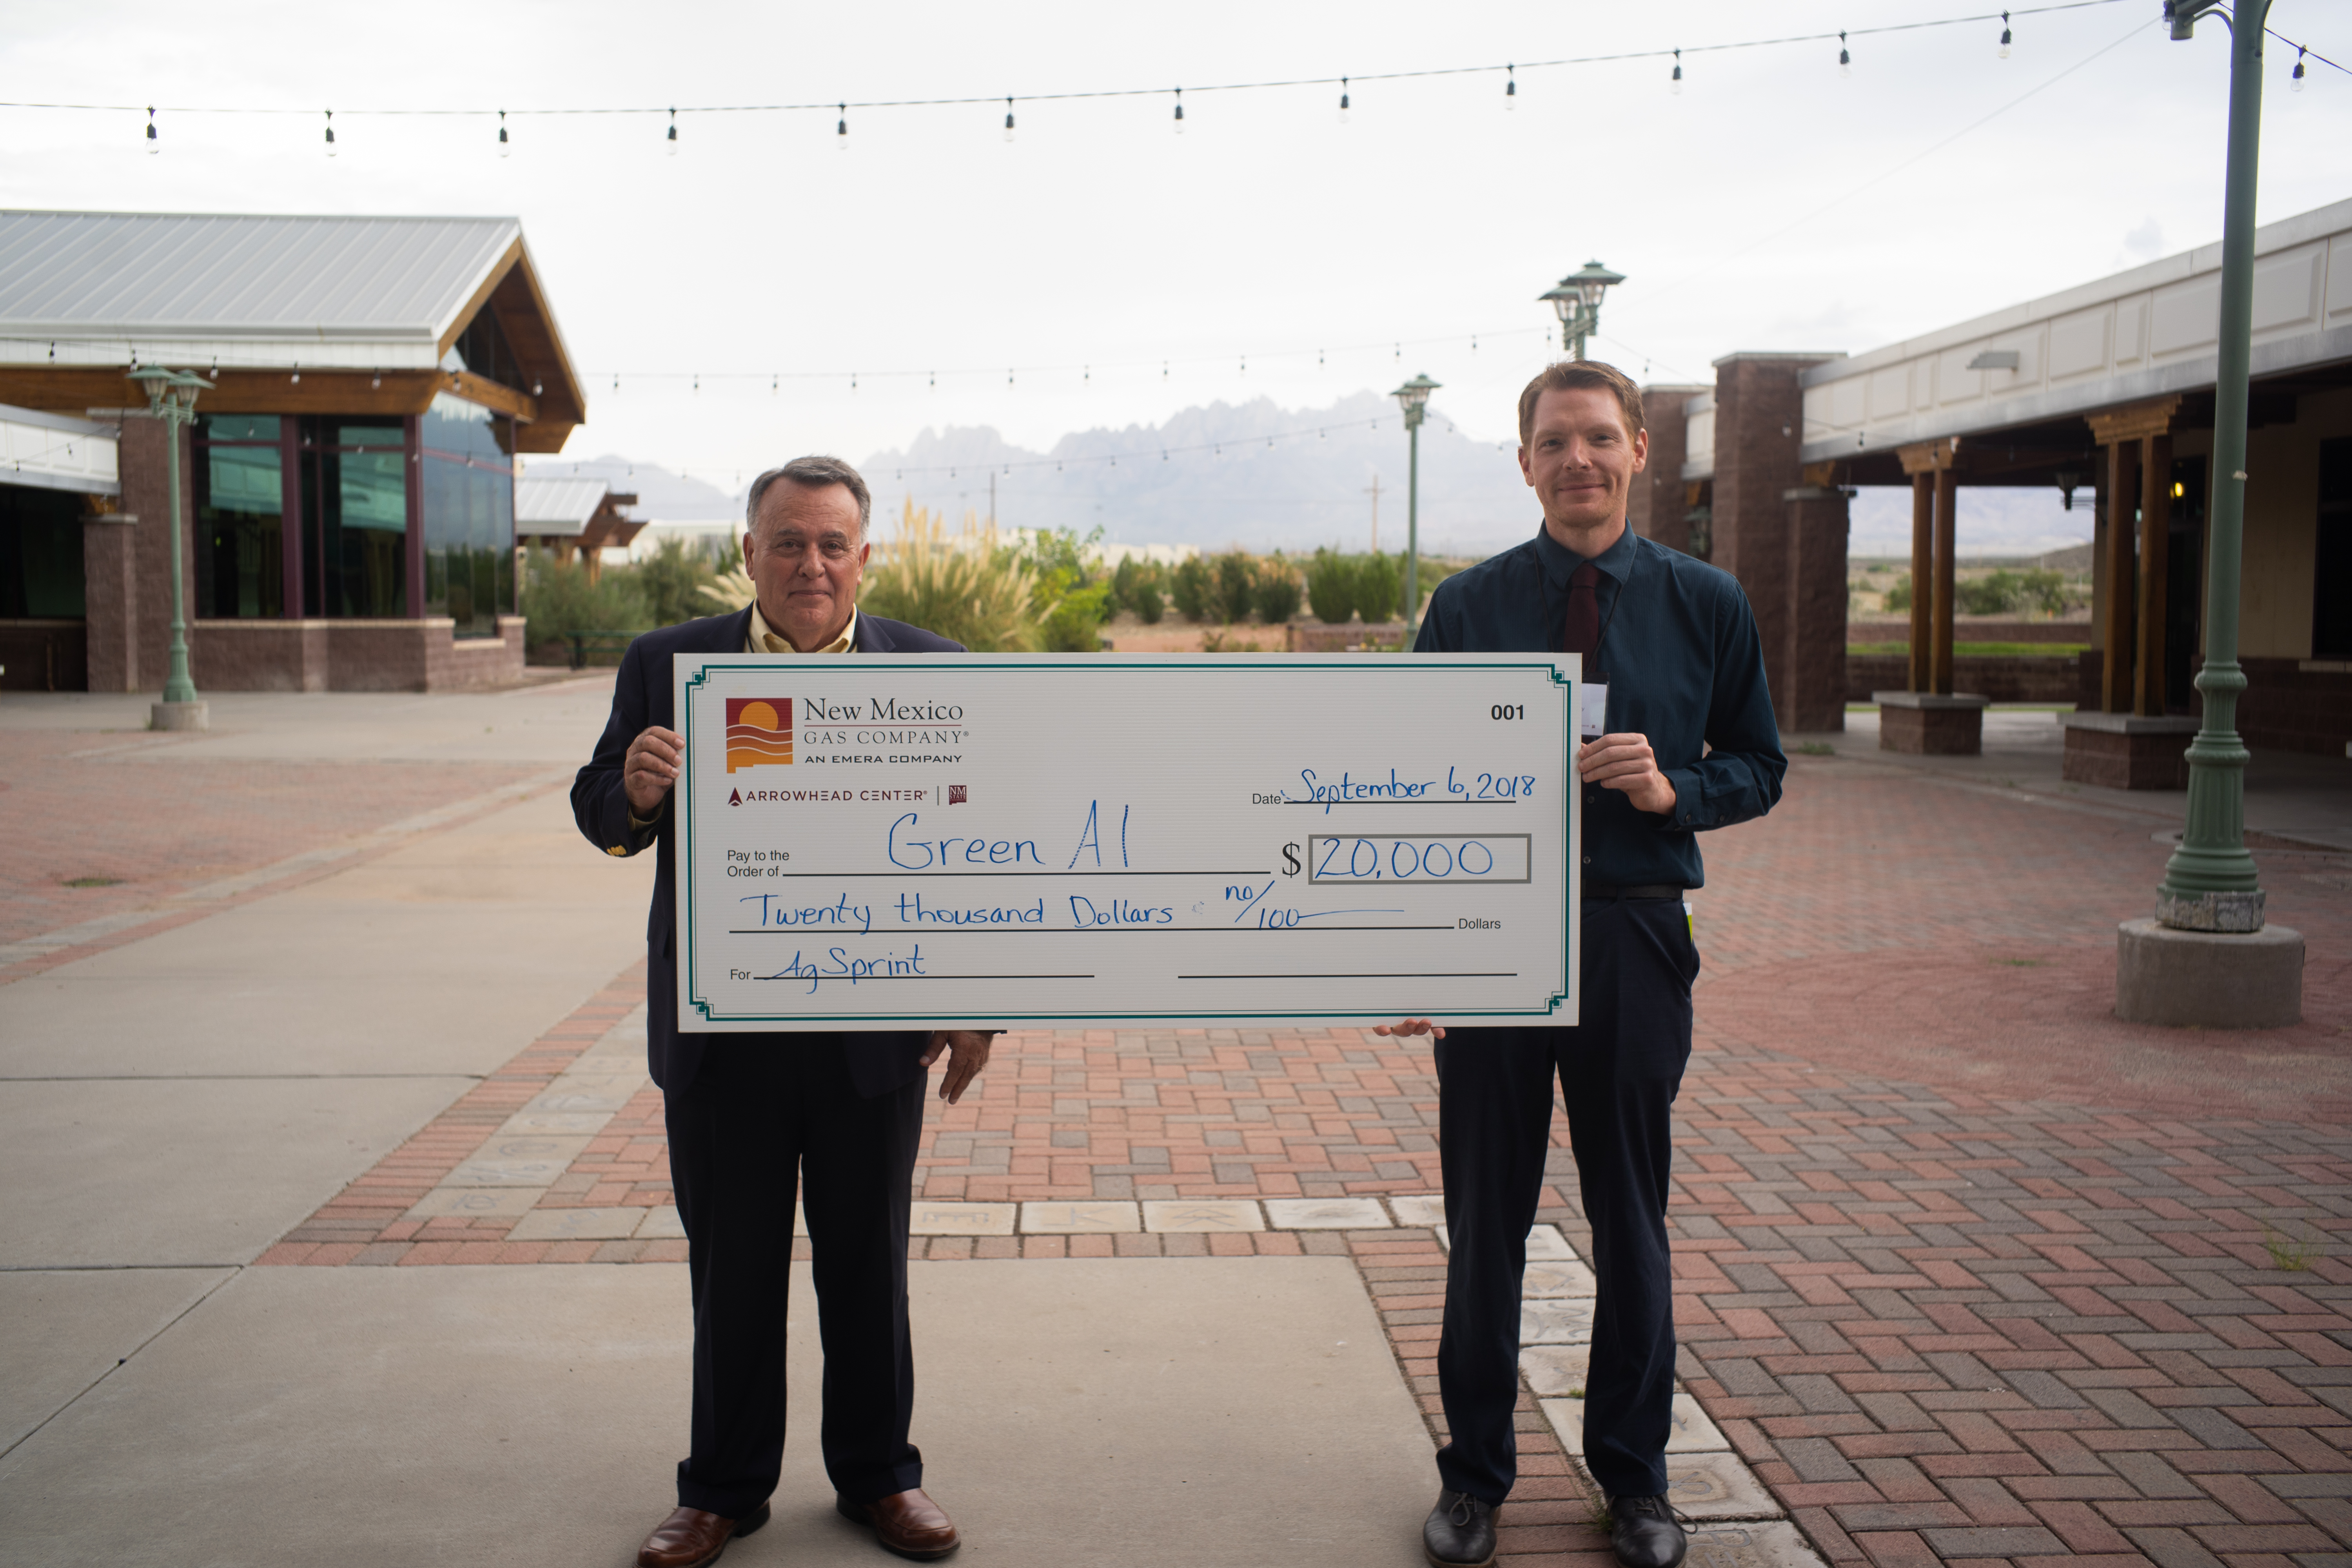 Cliff Hudson (left), chief technology officer of Systems Technology Solutions, recently secured a $20,000 investment for GreenAI, an innovative sensor technology for <br> crop analytics, through the AgSprint business accelerator program at New Mexico State University 's Arrowhead Center. The check was presented to Hudson at the <br>second annual AgAssembly conference in Las Cruces. At right is Del Mackey, program specialist at Arrowhead Center. (NMSU courtesy photo)